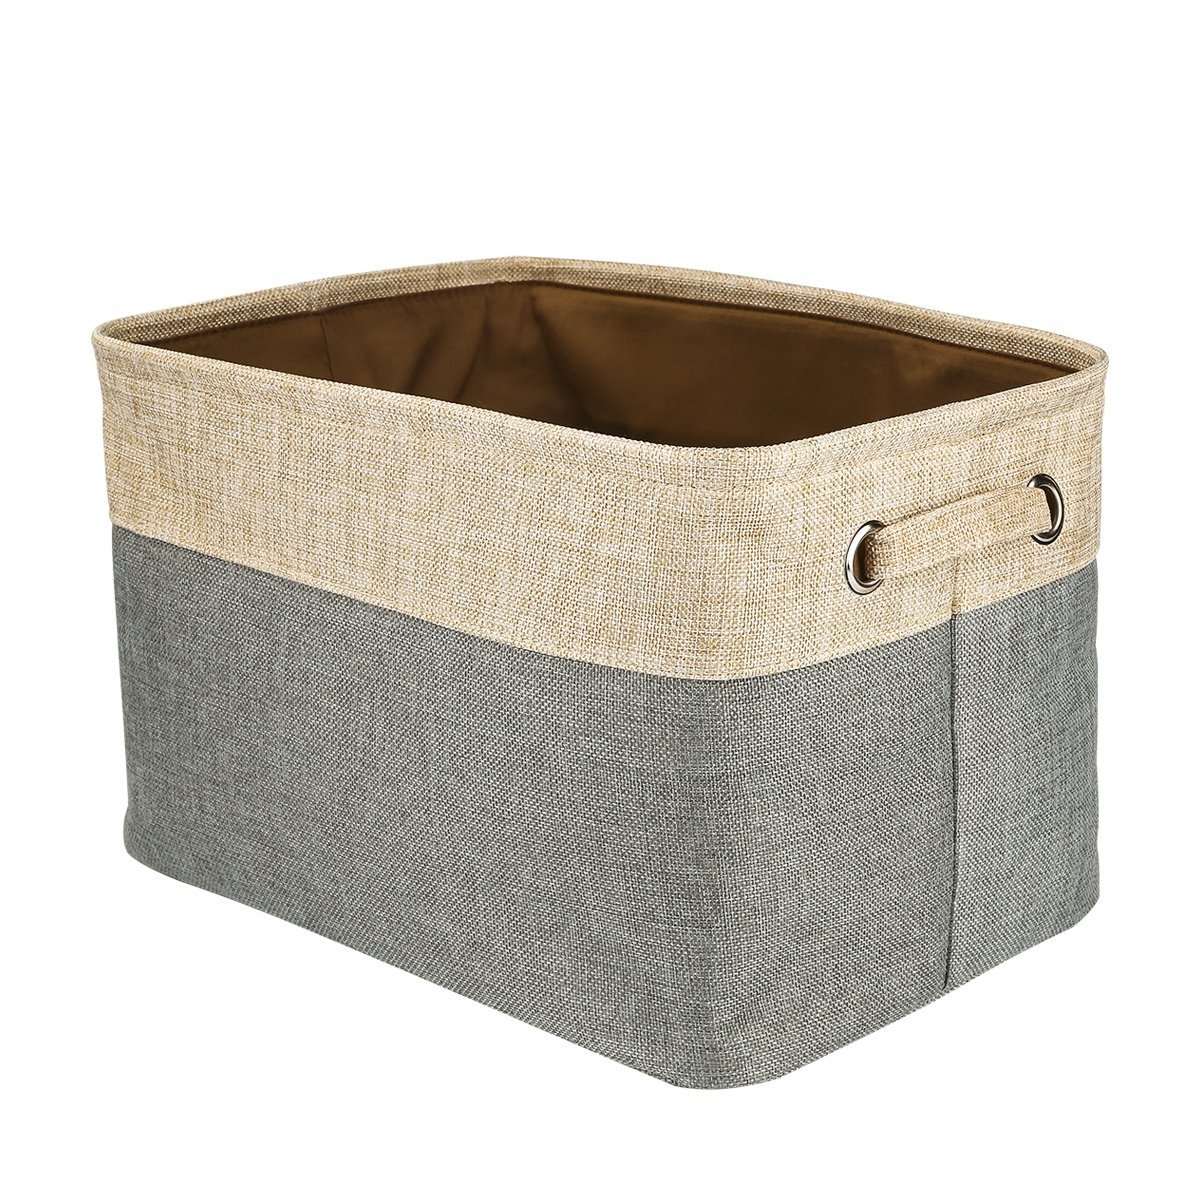 Foldable Convenient Storage Box Organizing Basket Closet Organizer with Handles, Cotton & Jute C.Fang